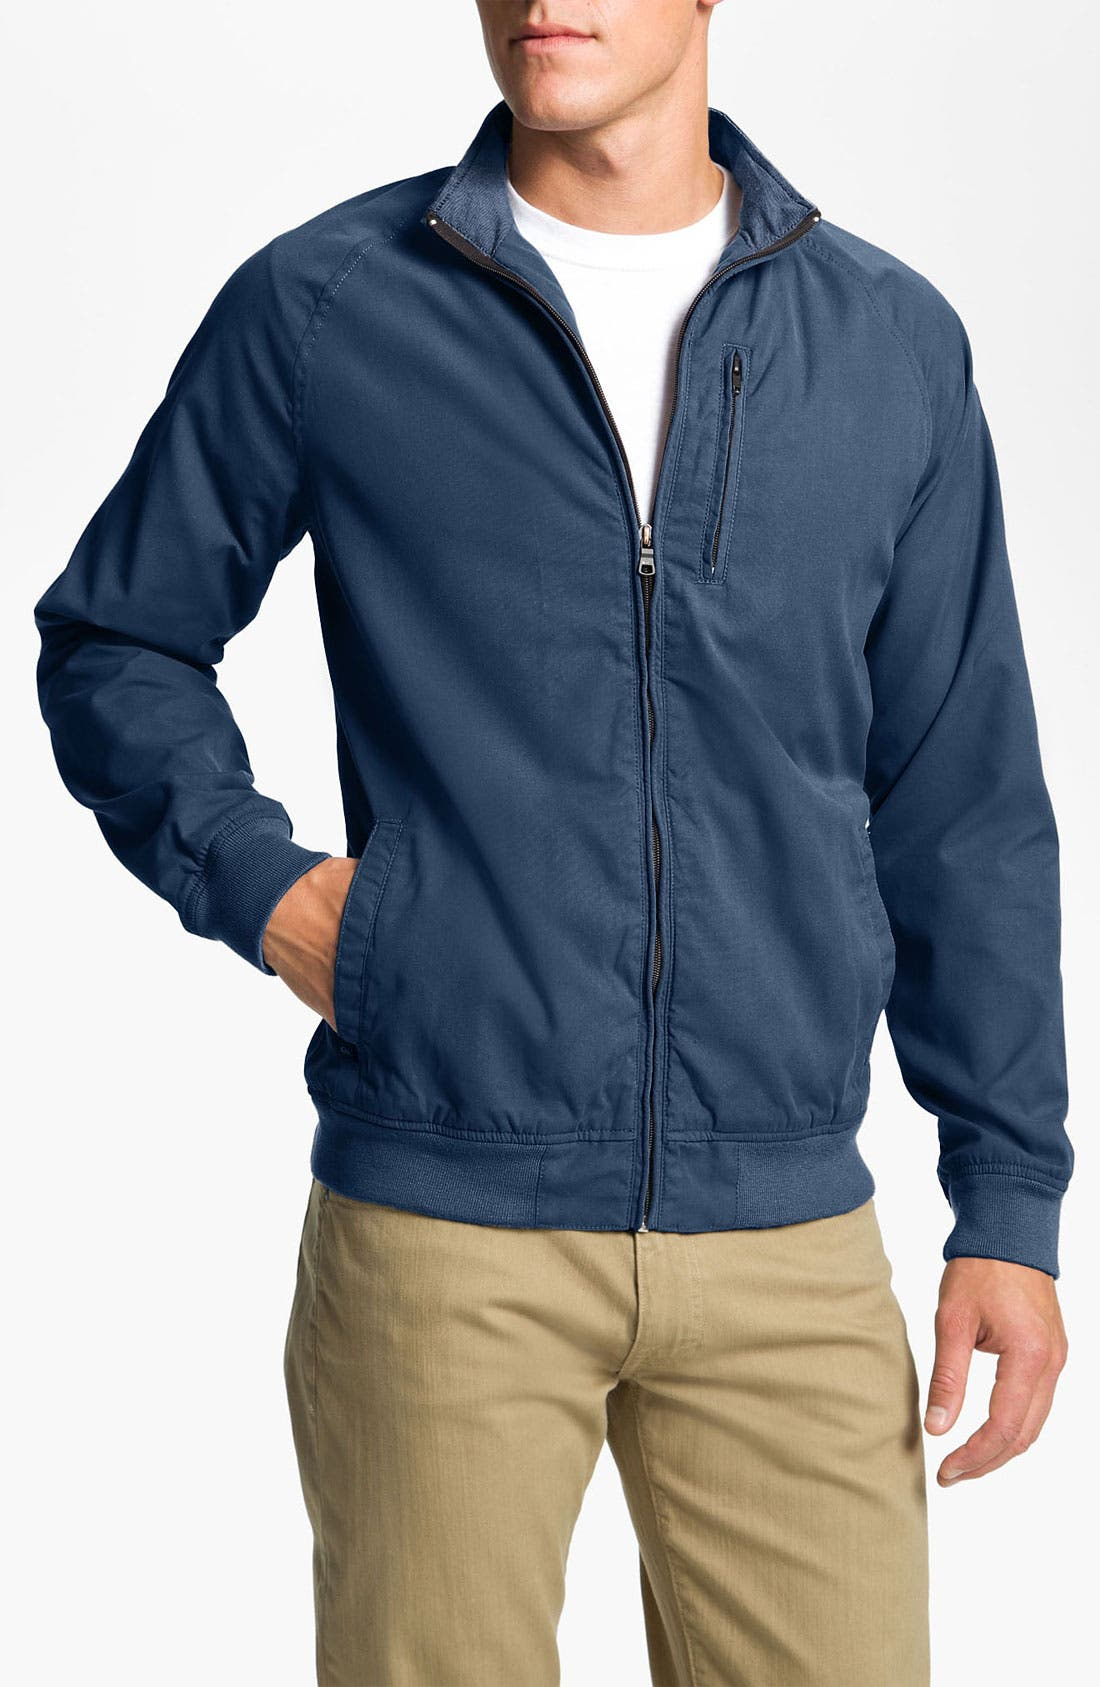 Main Image - Quiksilver 'Franklin' Jacket